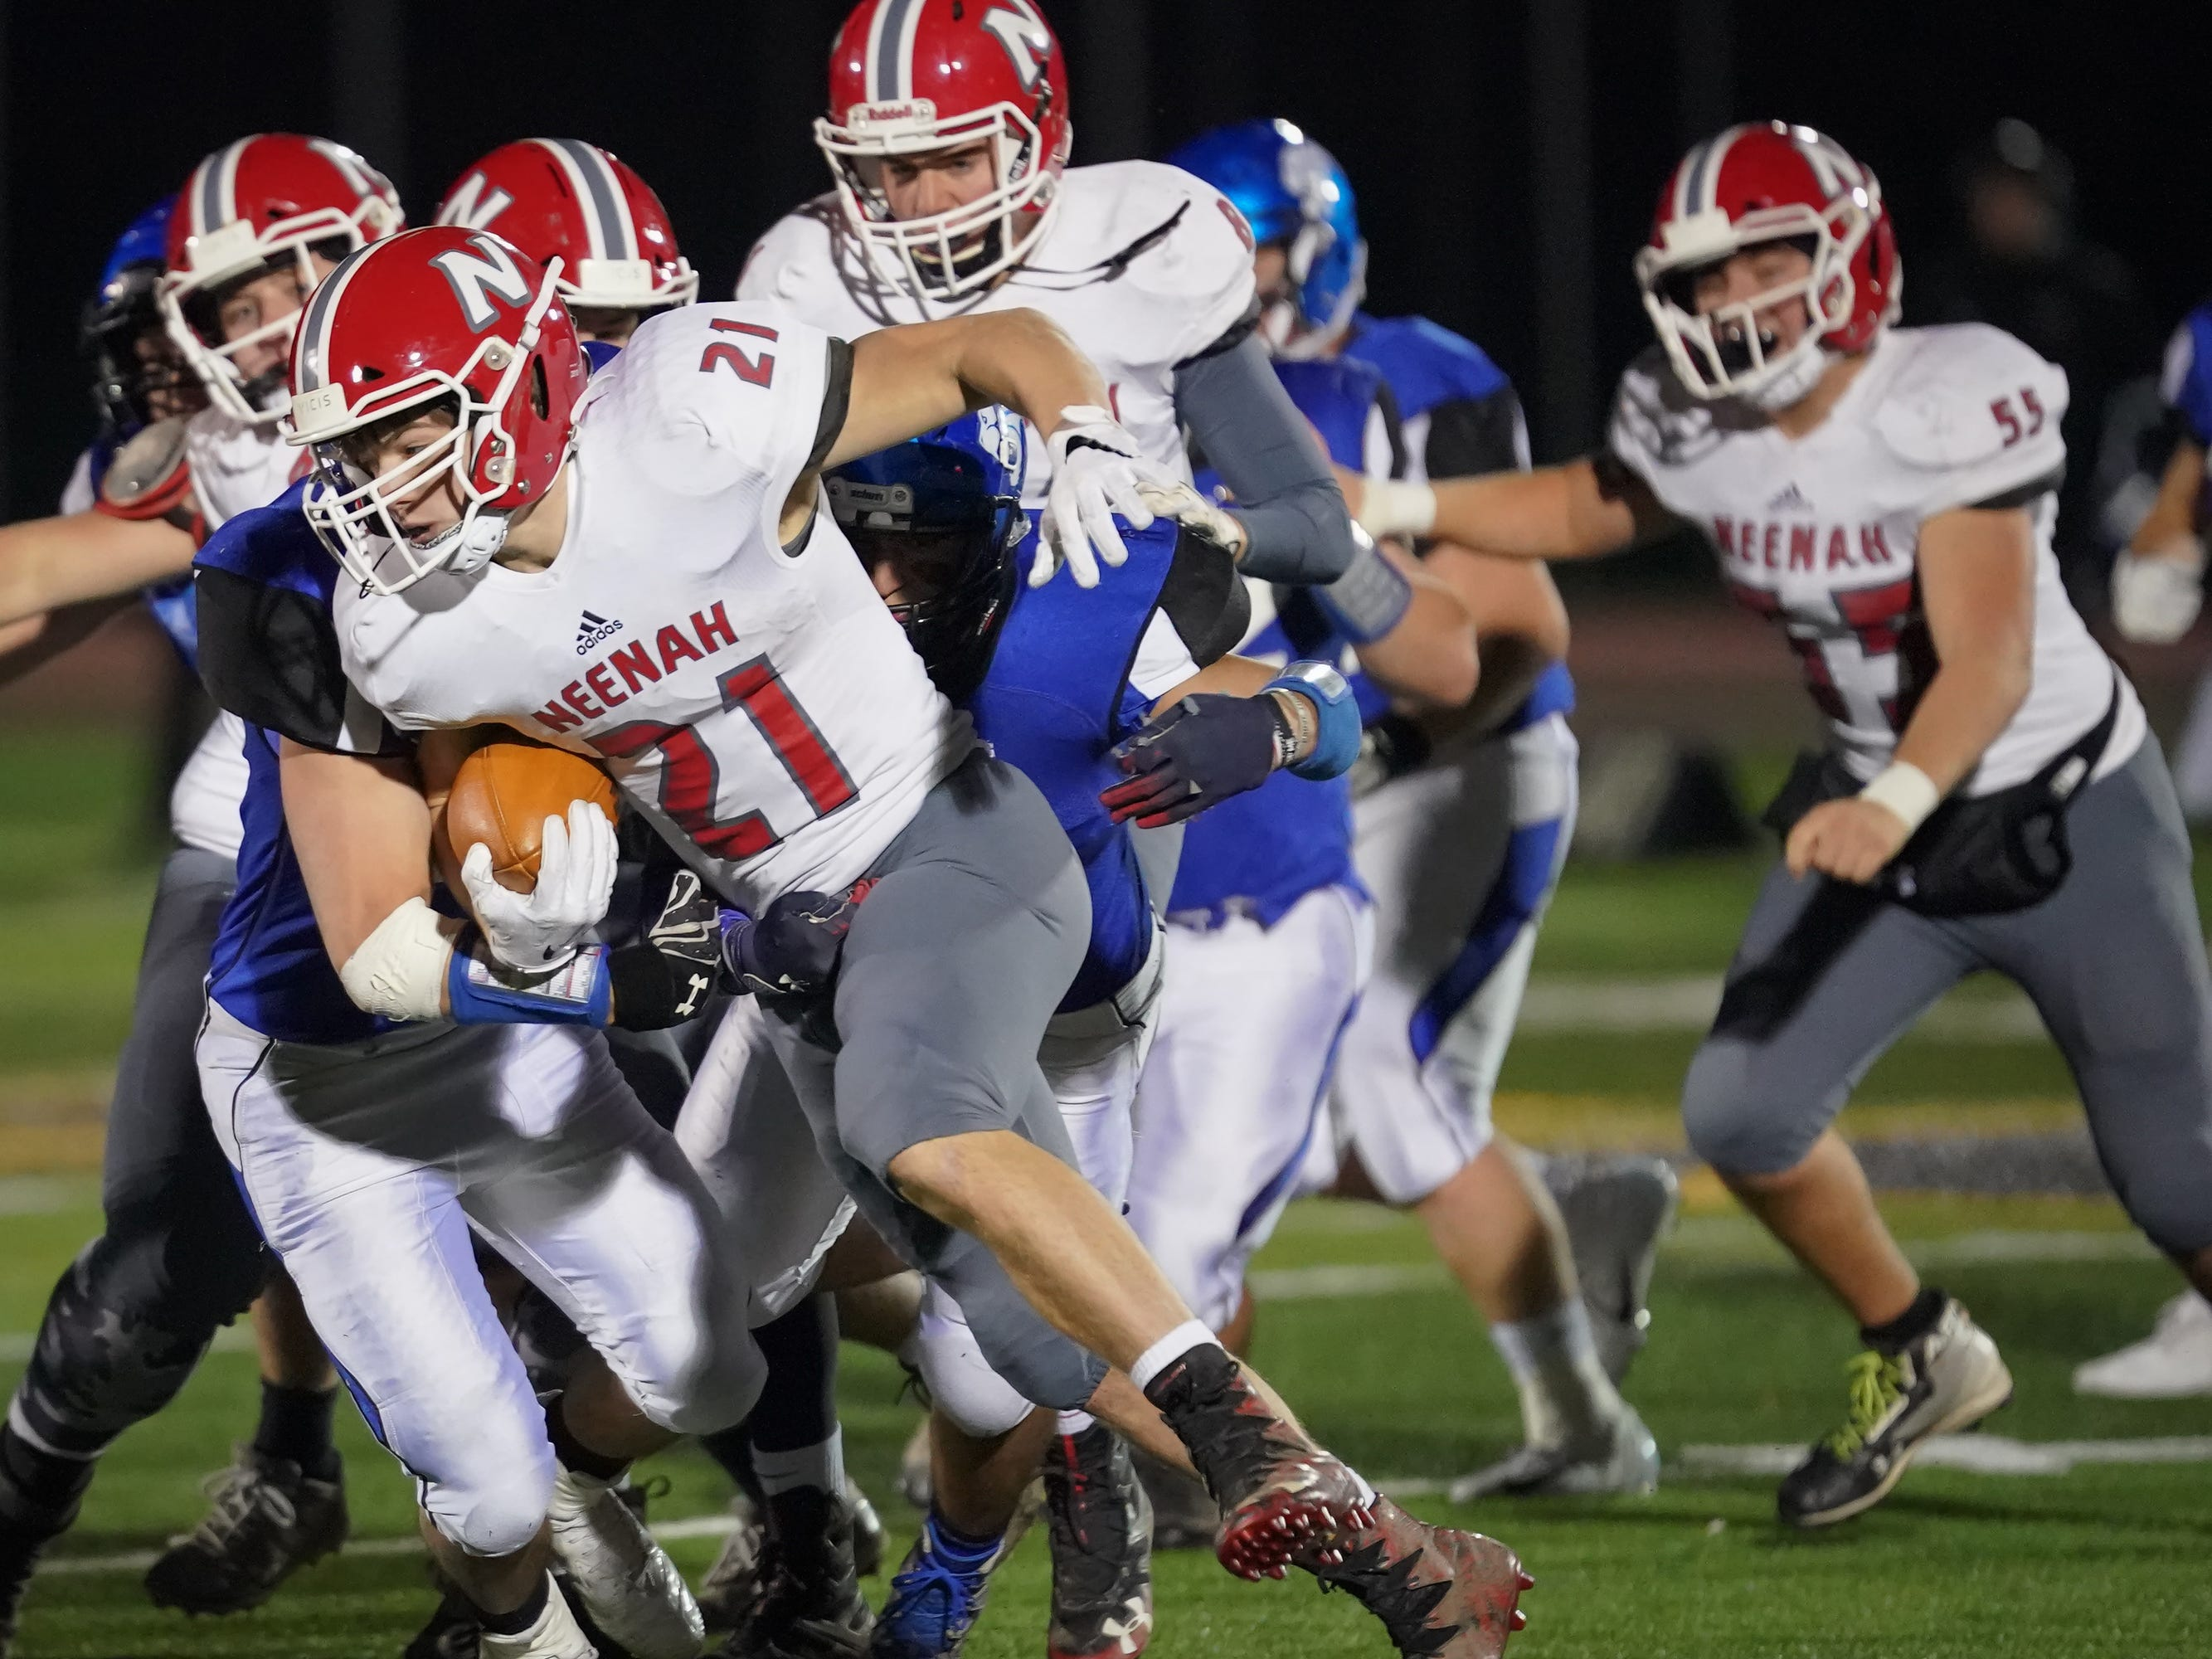 Carson Hughes (21) of Neenah looks for running room. The Oshkosh West Wildcats hosted the Neenah Rockets in an FVA-South conference matchup Friday evening, October 12, 2018 at J. J. Keller Field at Titan Stadium.